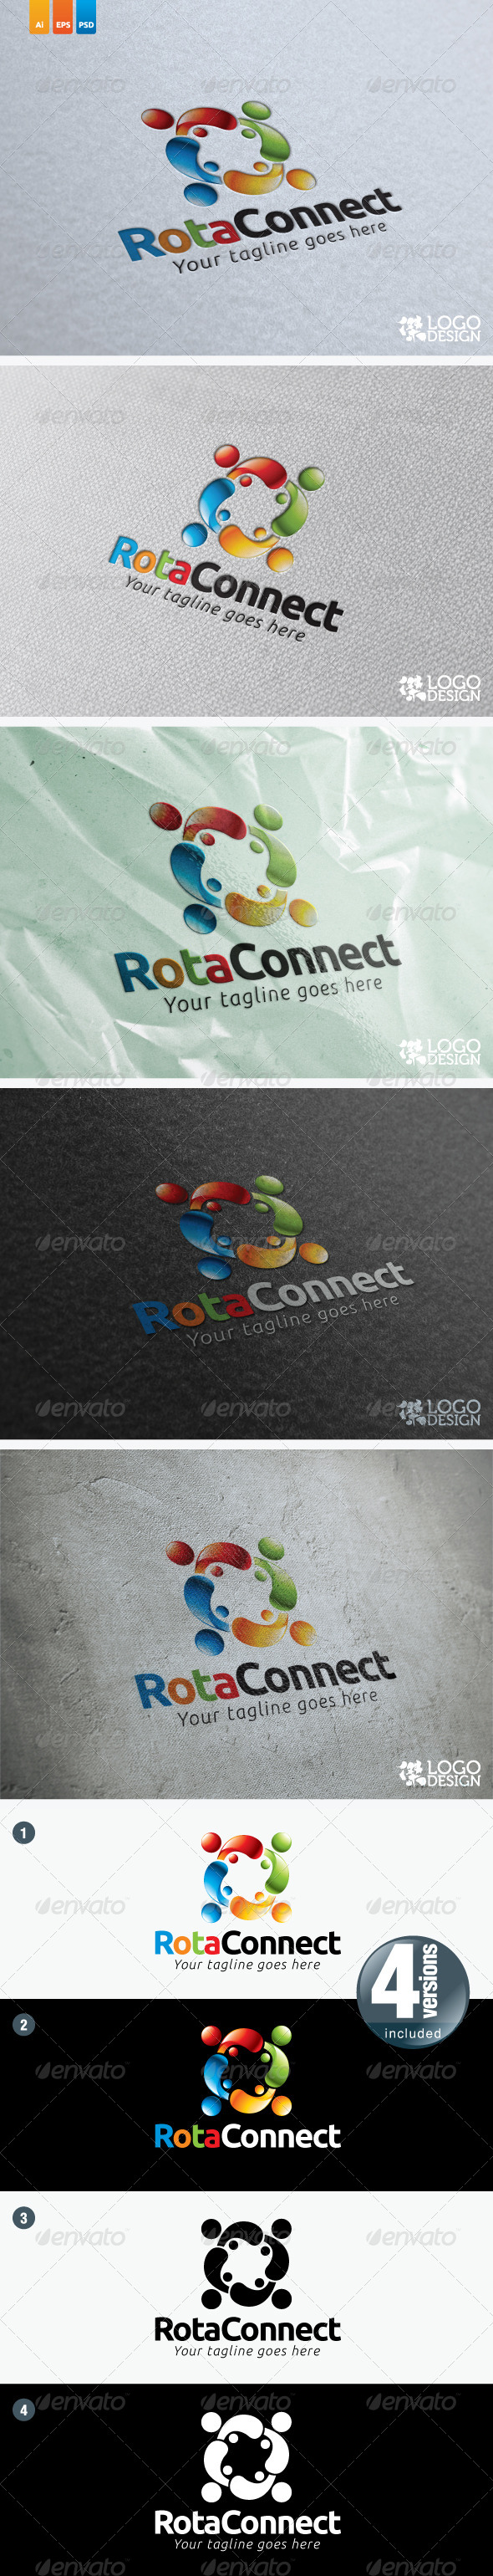 RotaConnect - Humans Logo Templates